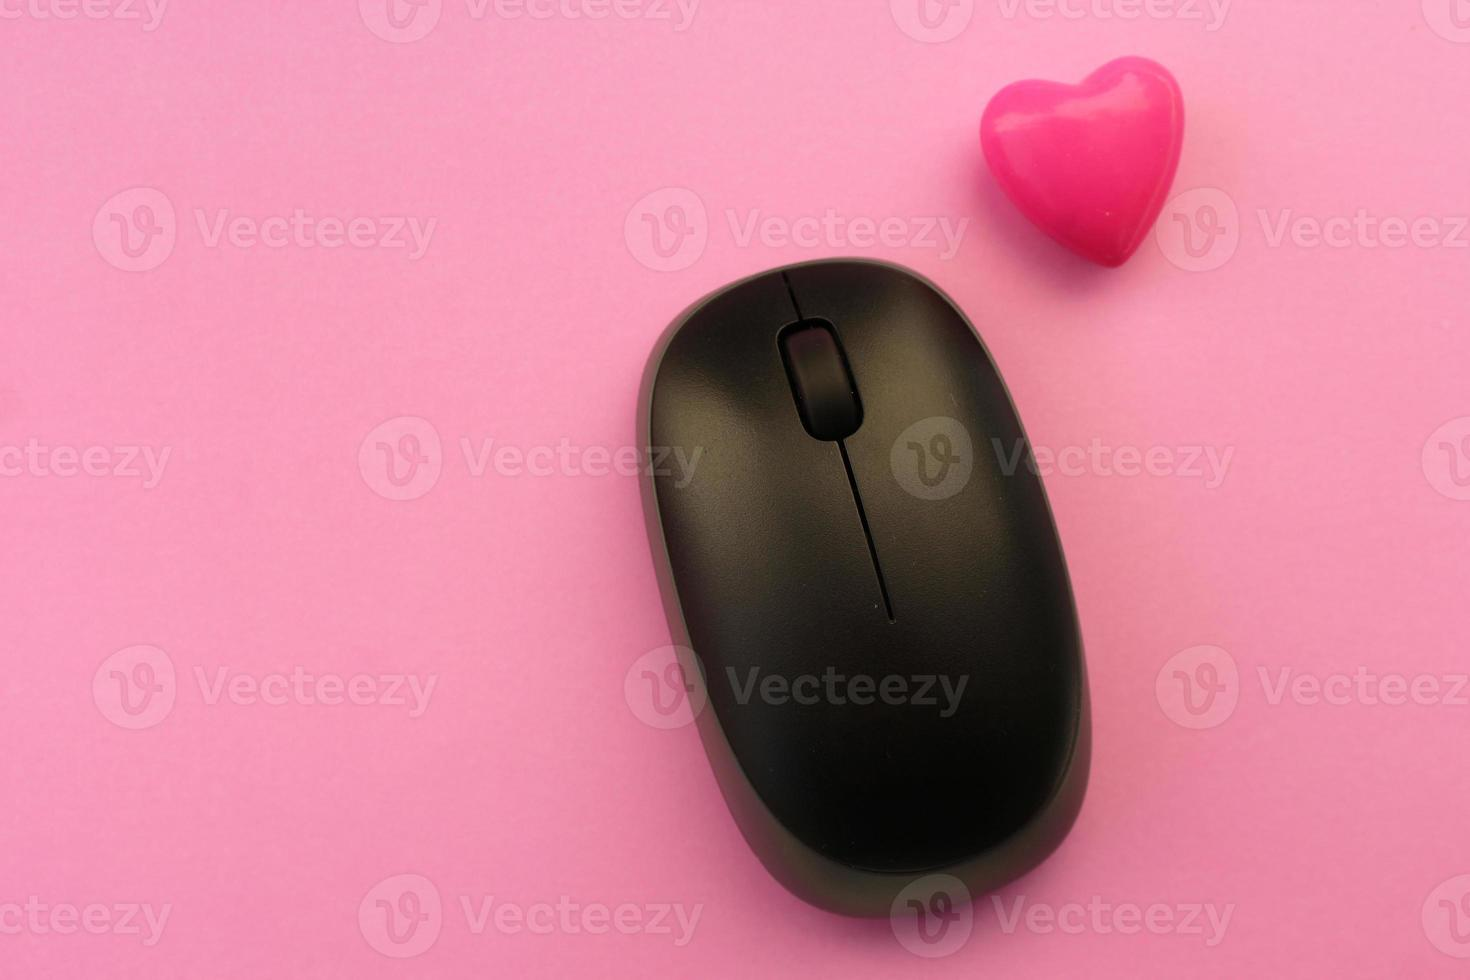 Wireless computer mouse and pink heart - love technology concept photo